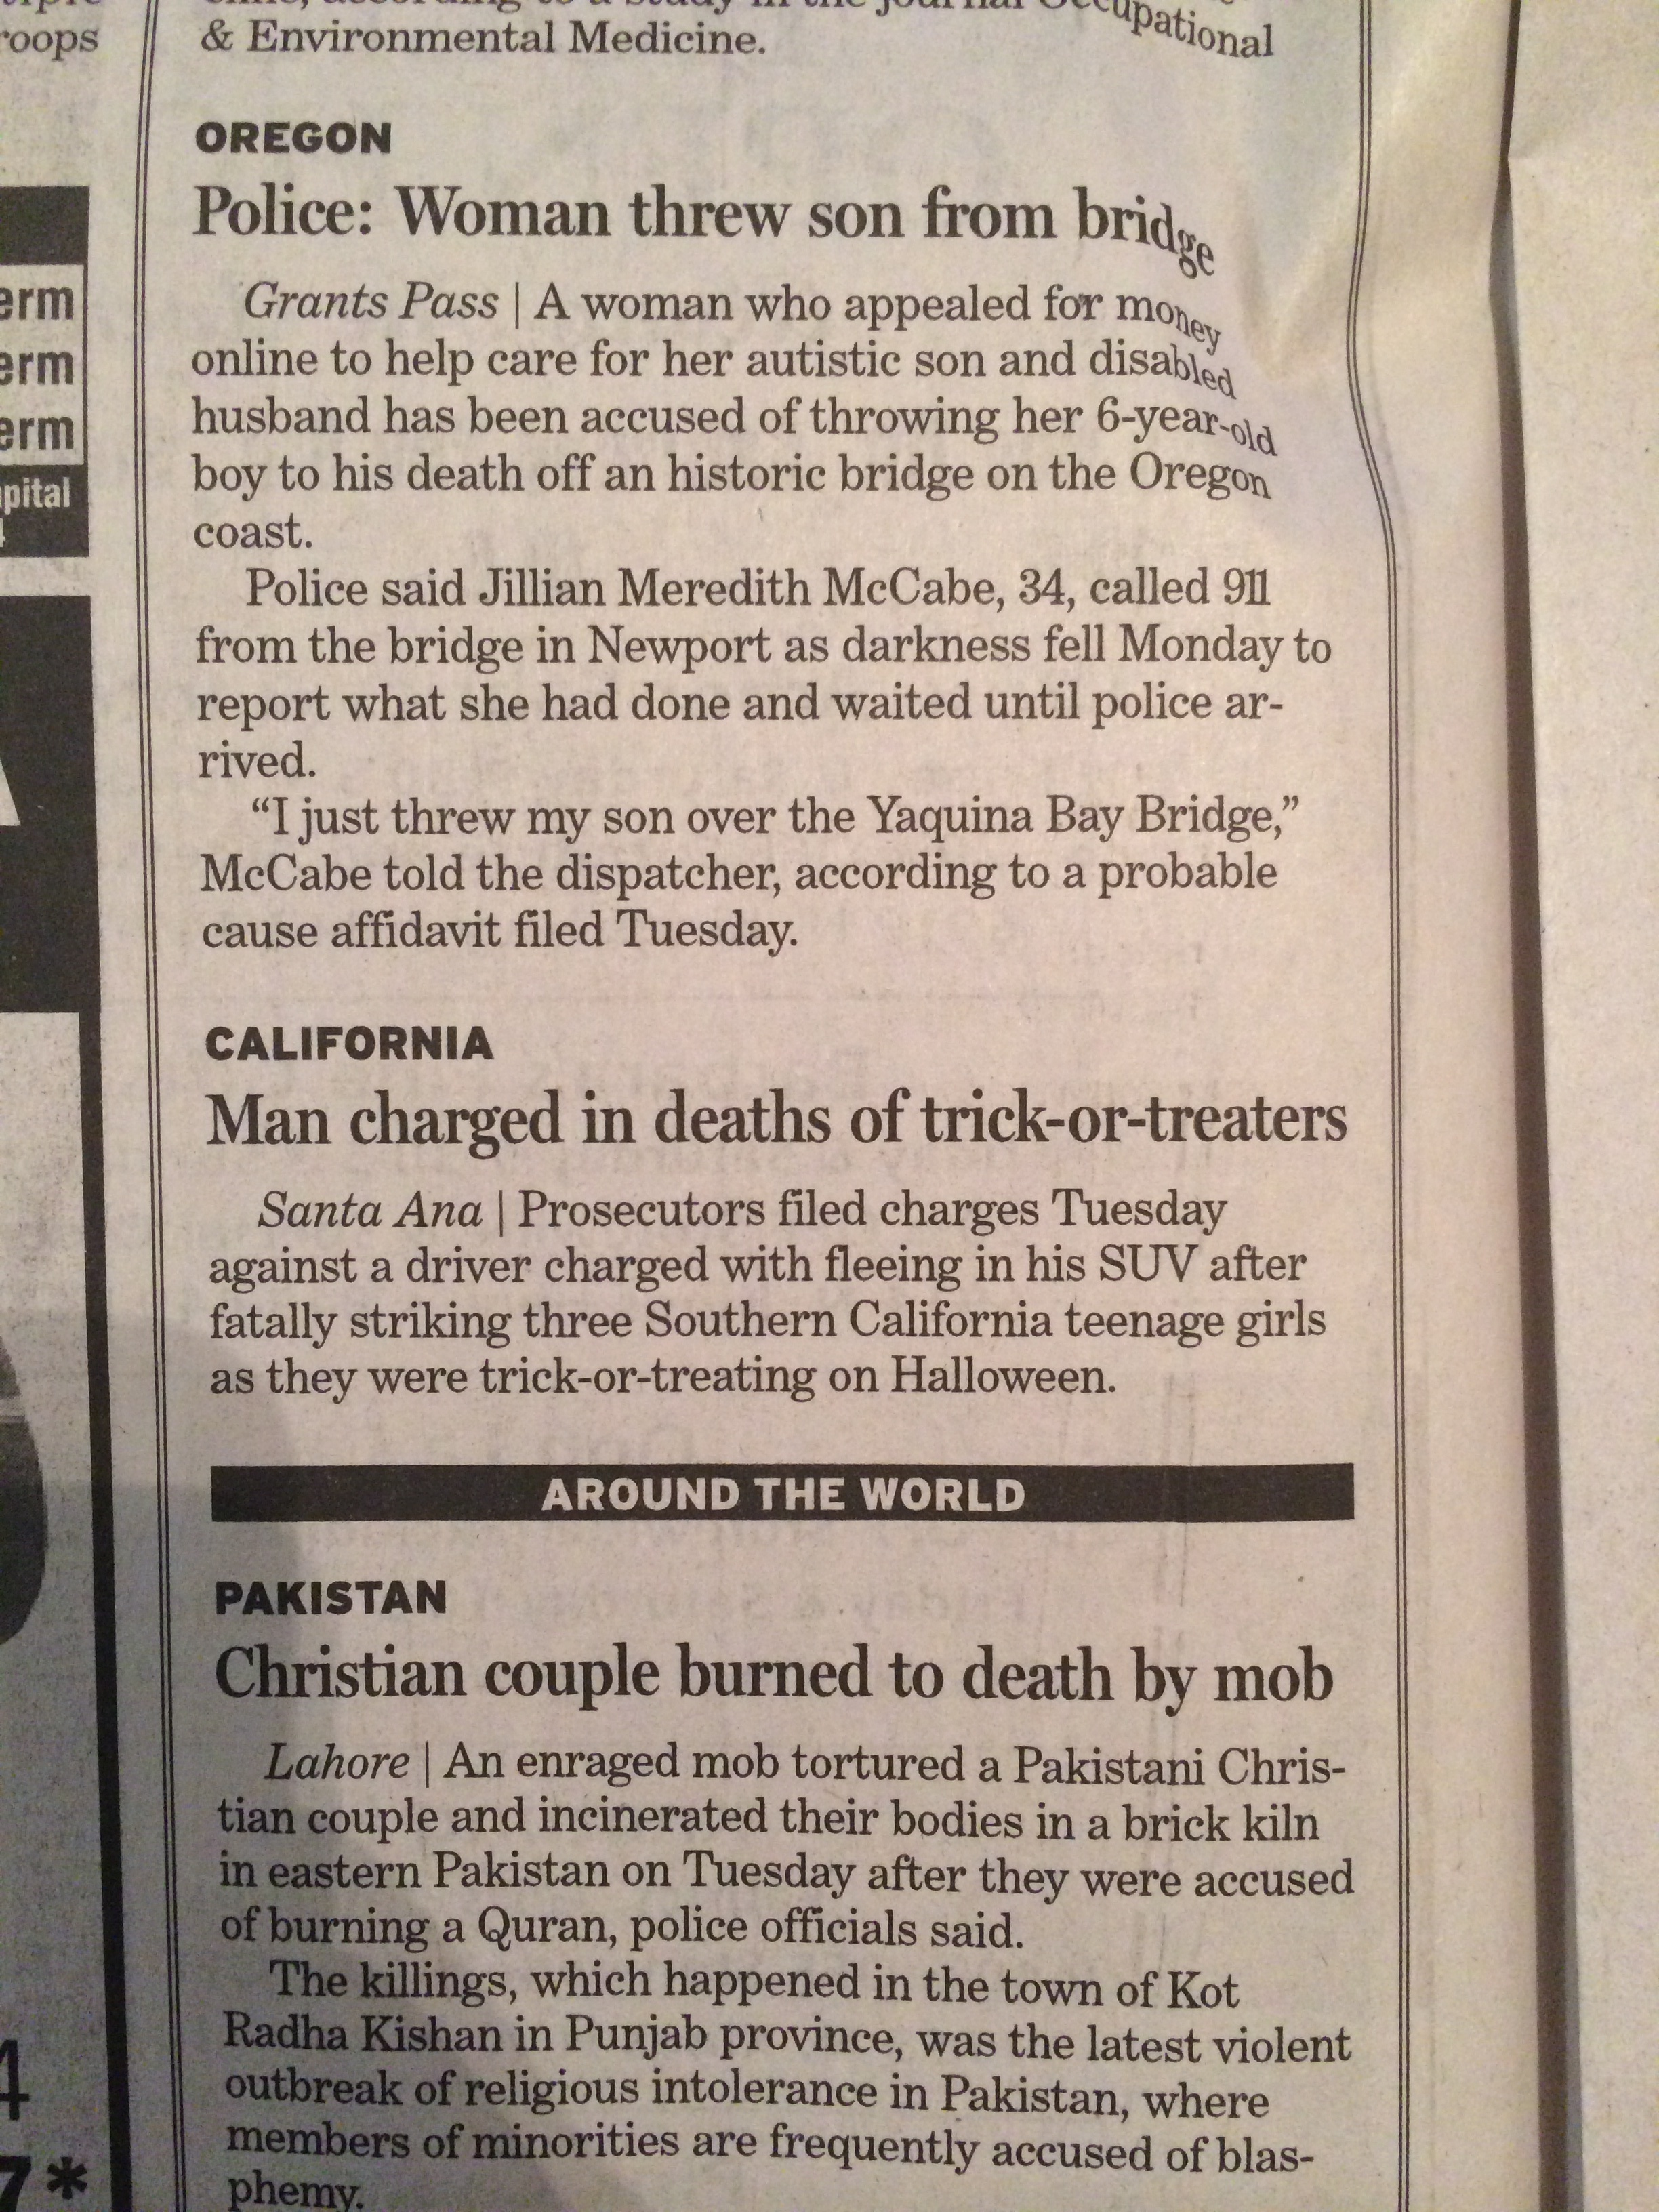 These sad news stories were piled right on top of each other.